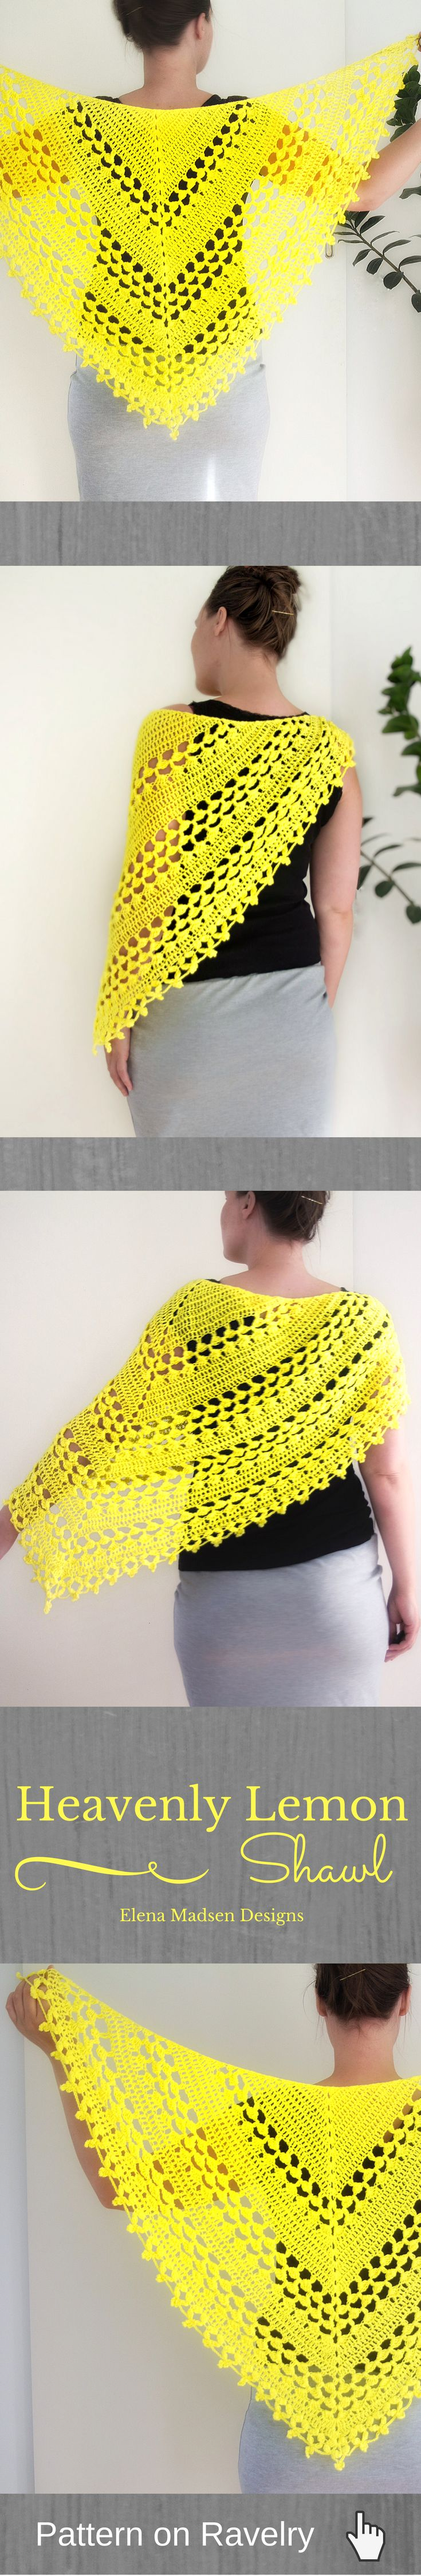 17 Best ideas about Crochet Shawl Patterns on Pinterest ...